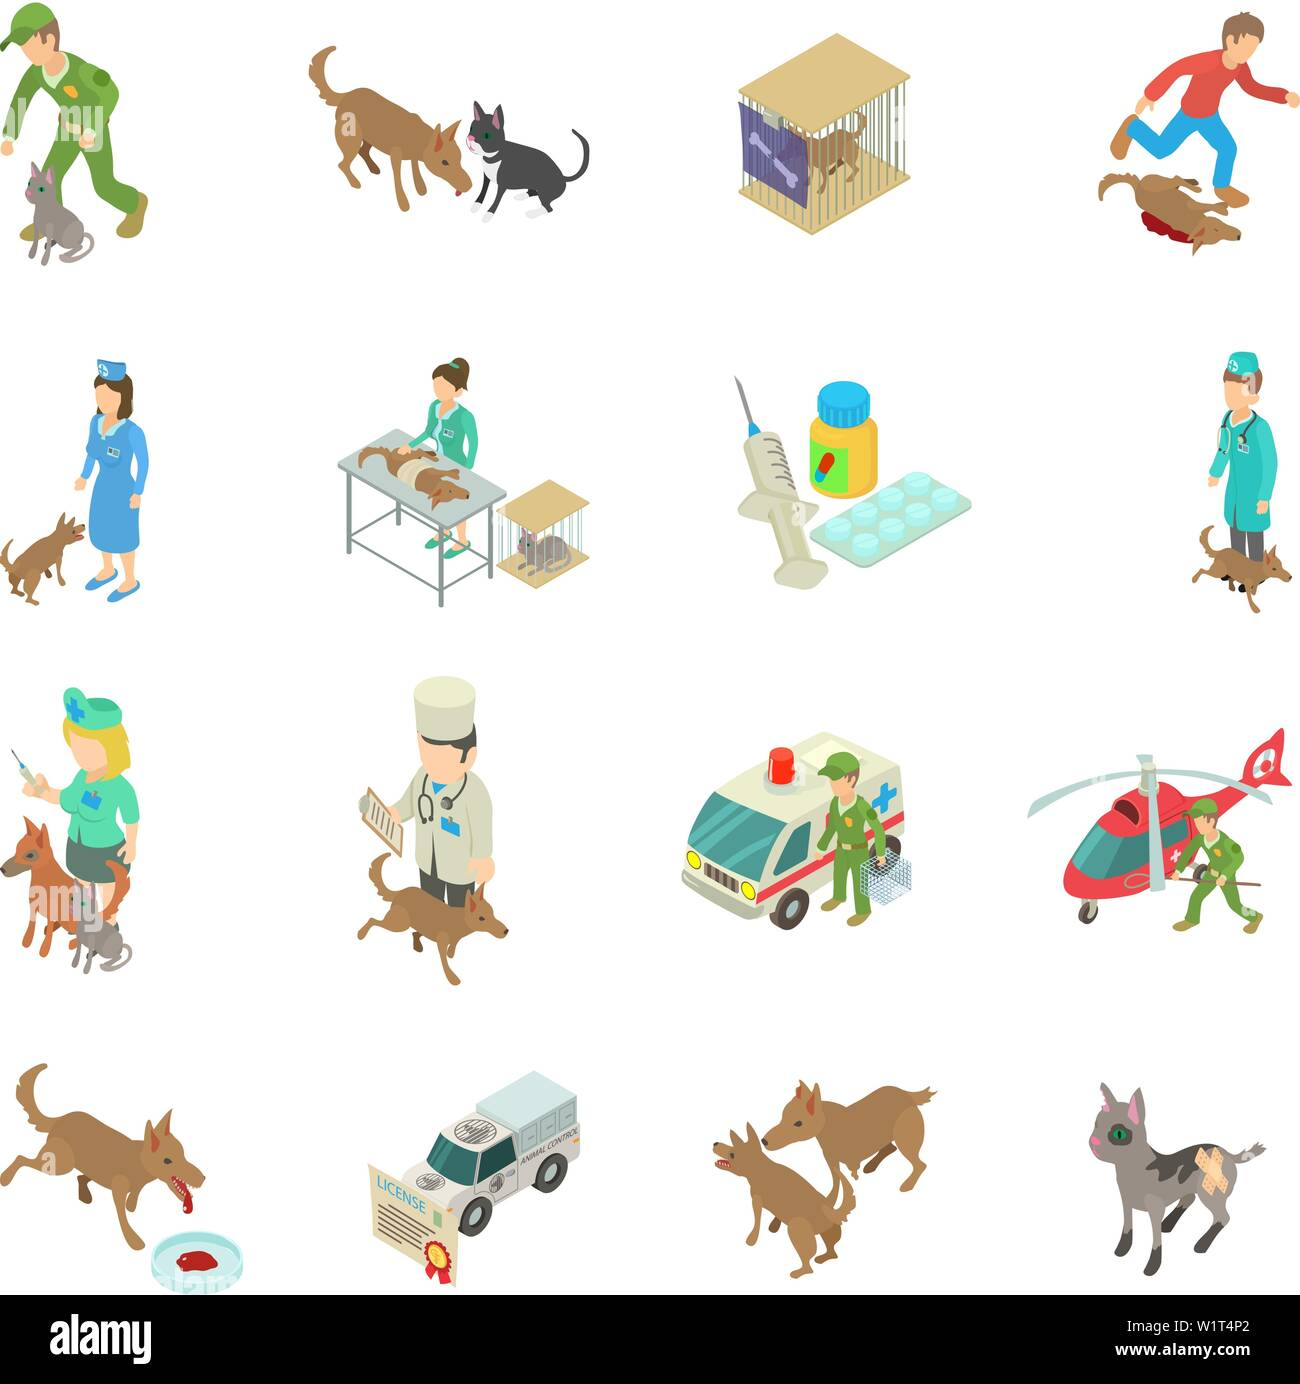 Treatment of animal icons set, isometric style - Stock Vector